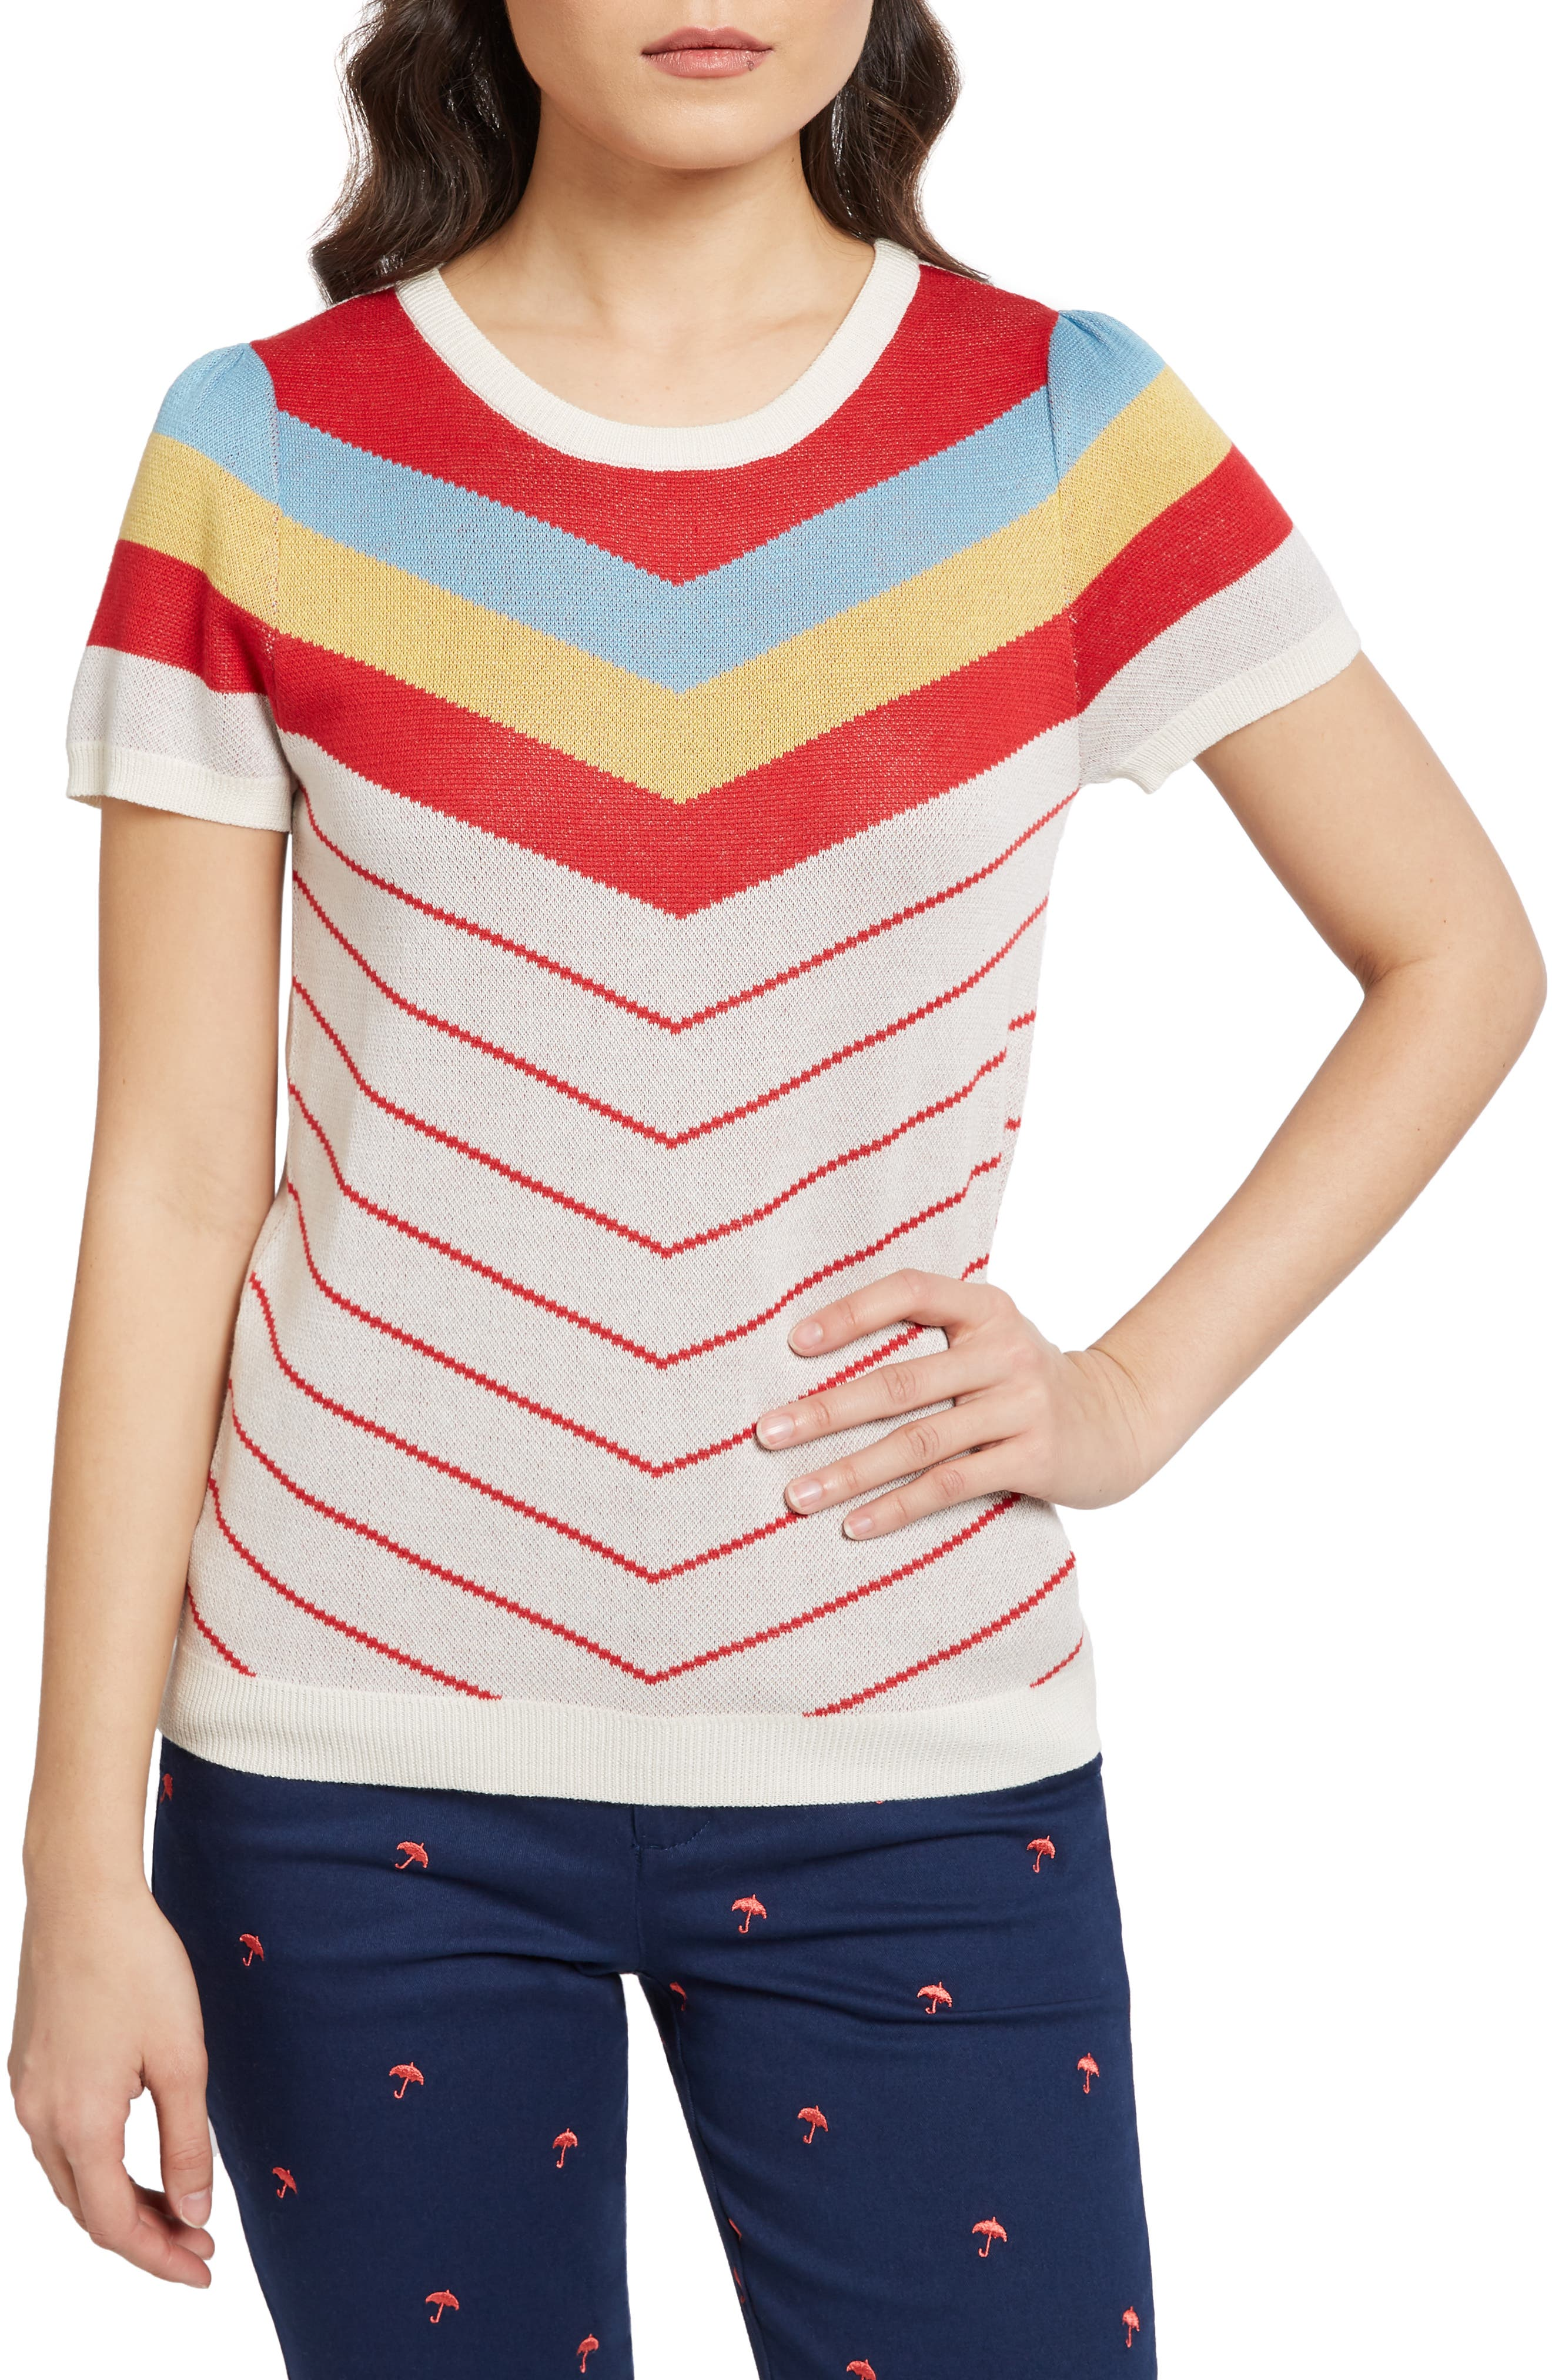 70s Outfits – 70s Style Ideas for Women Womens Modcloth Vintage Stripe Sweater $55.00 AT vintagedancer.com